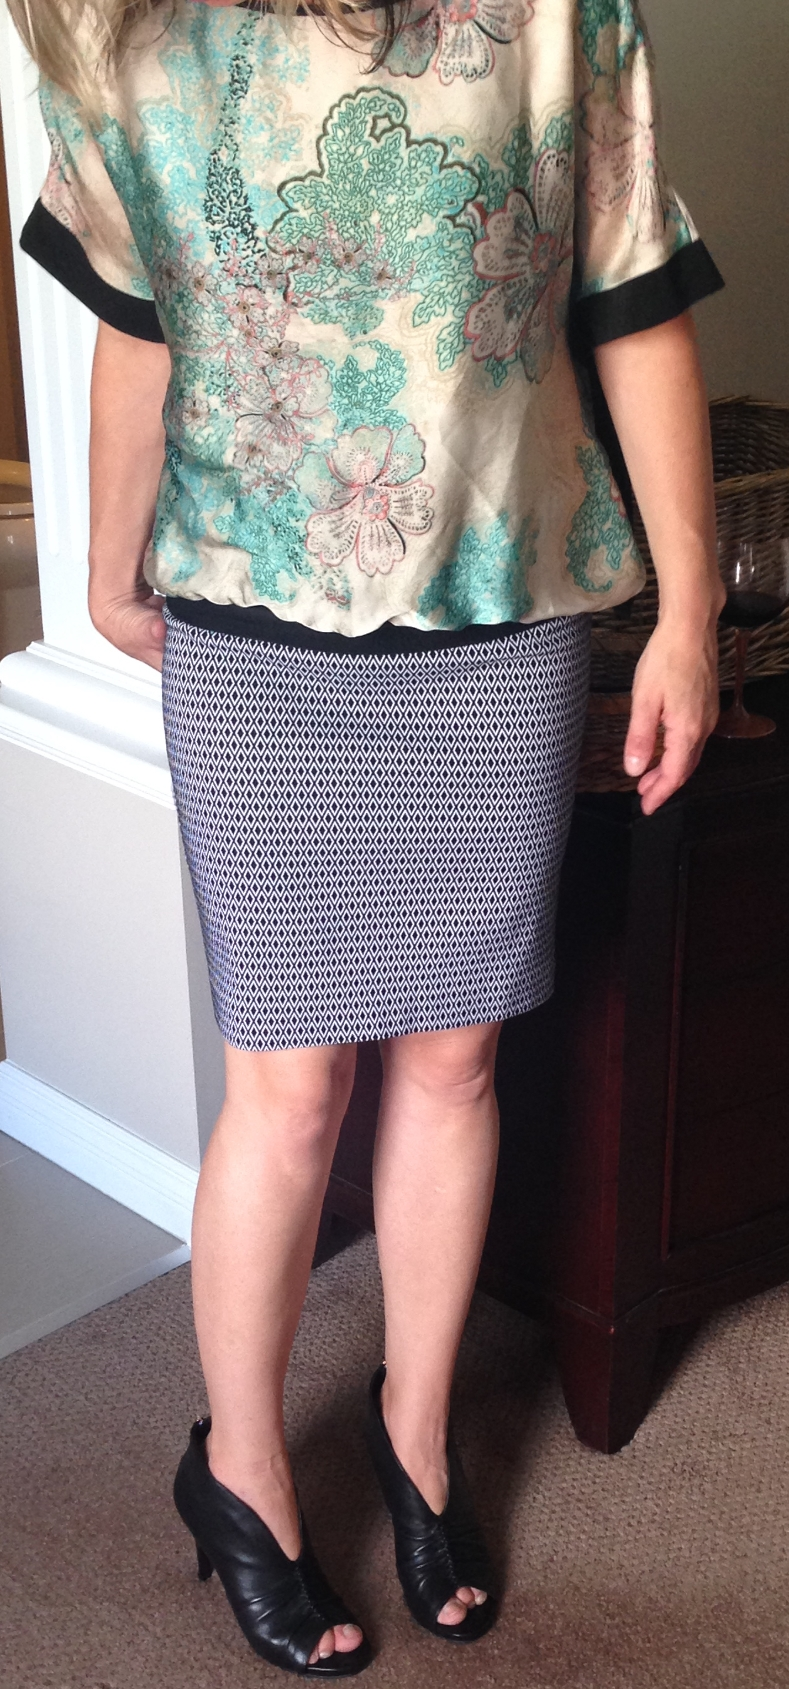 This top doesn't have white in it but it still works... why?  Because the skirt is a neutral.